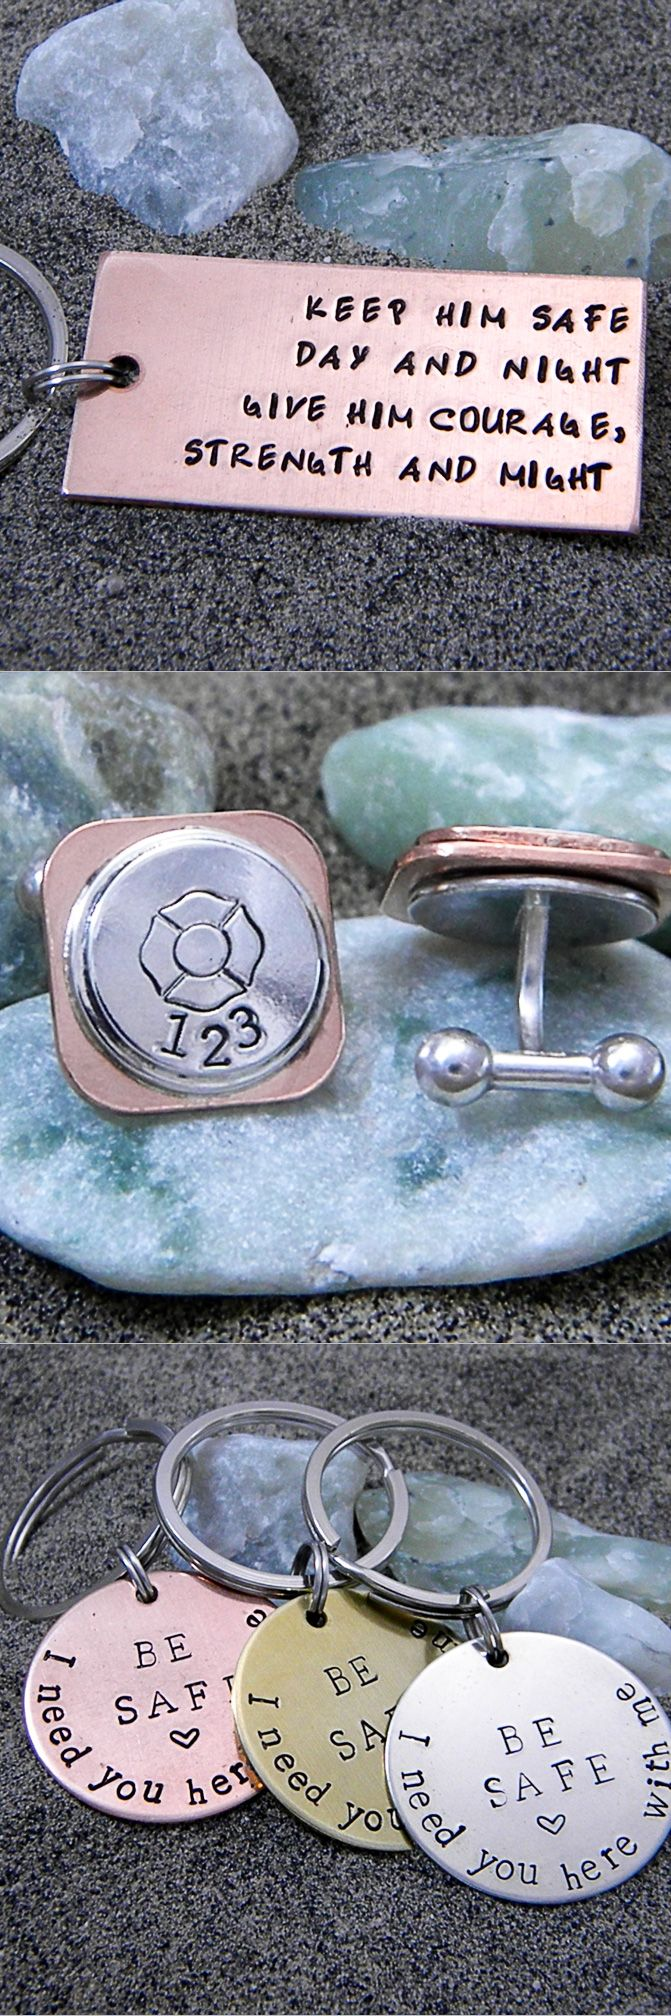 Great gift ideas for the special firefighter in your life.  Keyhains can be personalized with a custom message on the back and cuff links can be personalized with a station number or short name.